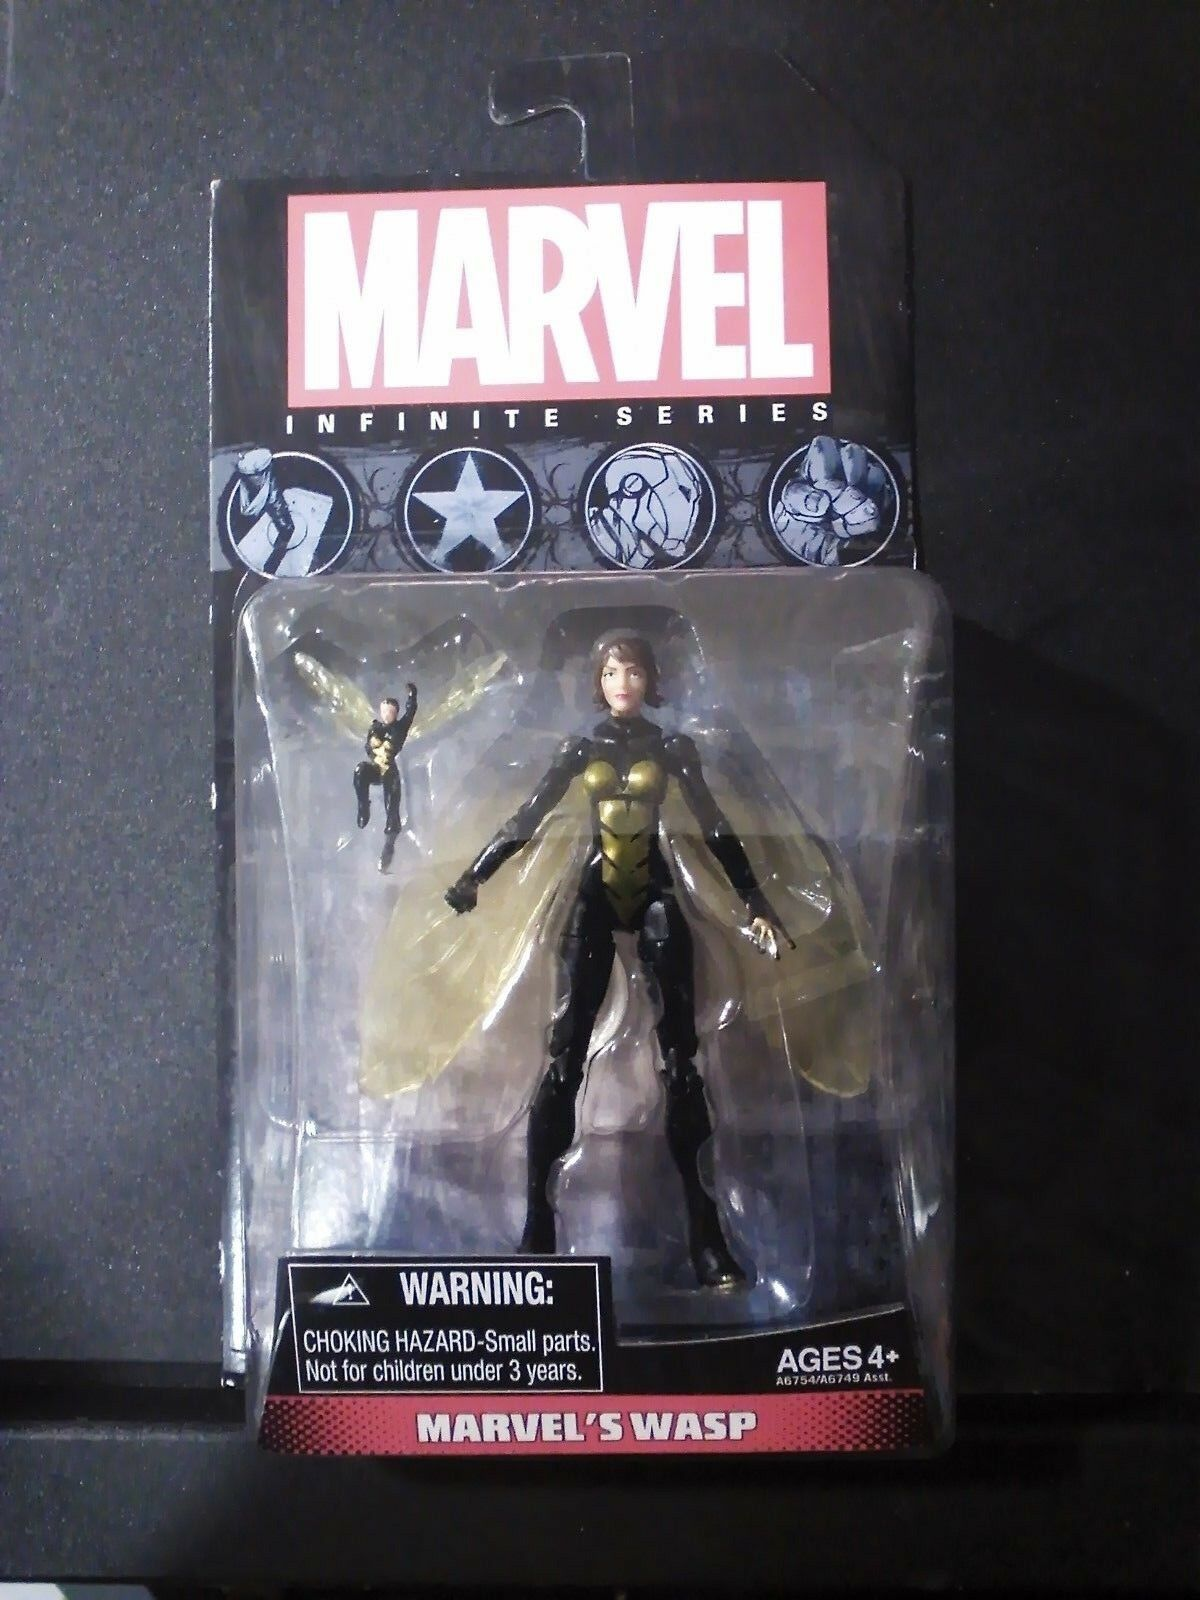 Marvel Universe Marvel's WASP Infinite Series  3.75 Inch Act